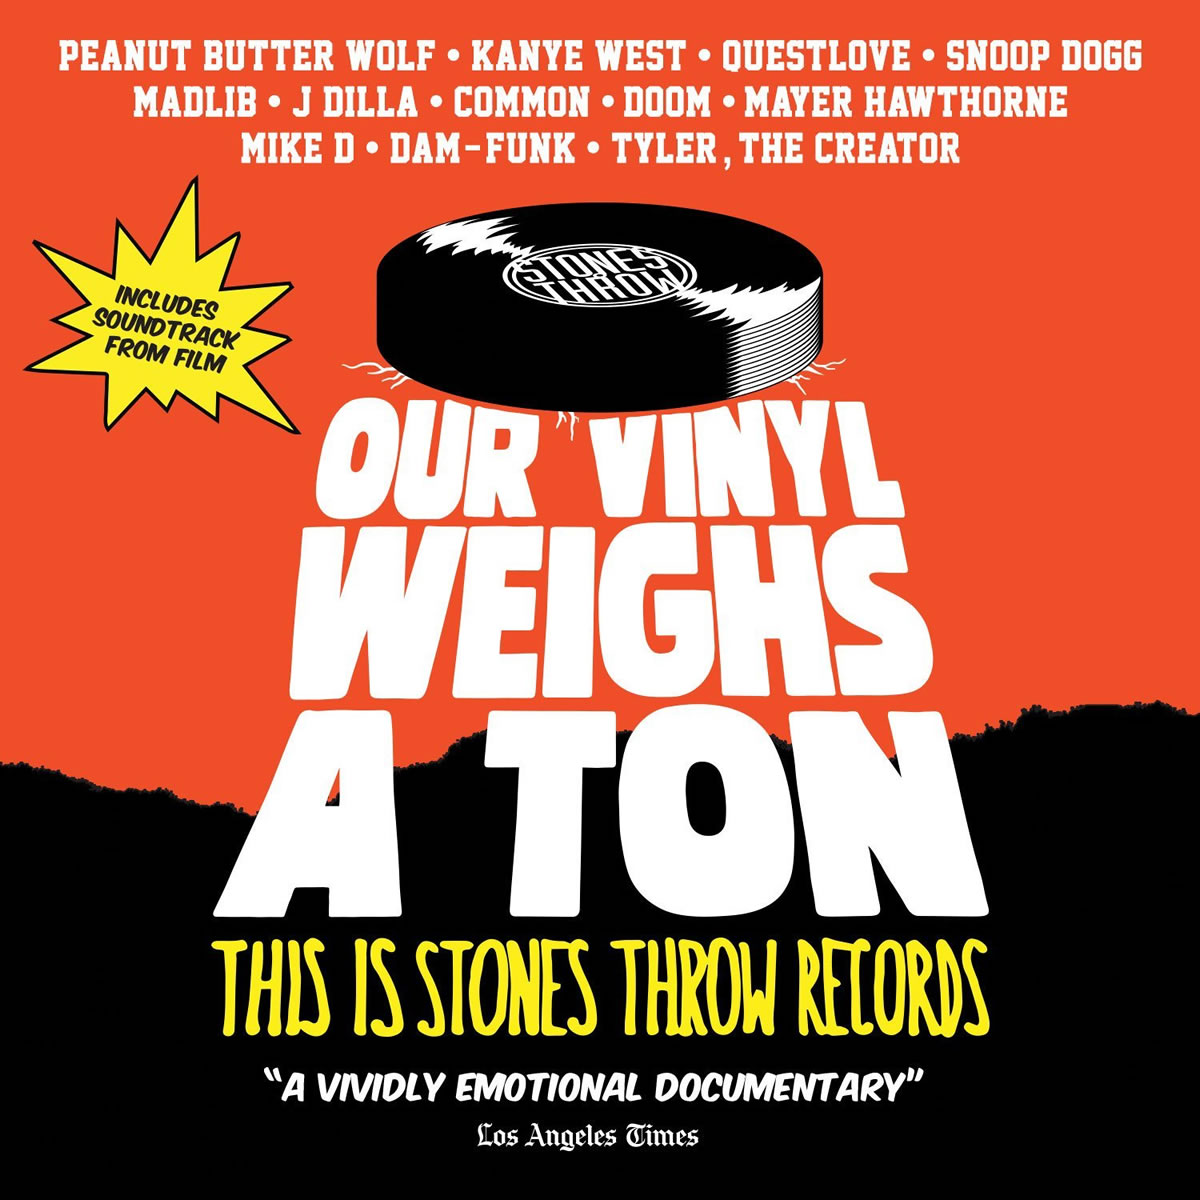 VARIOUS ARTISTS - OUR VINYL WEIGHS A TON : THIS IS STONES THROW RECORDS (BLU-RAY & CD)